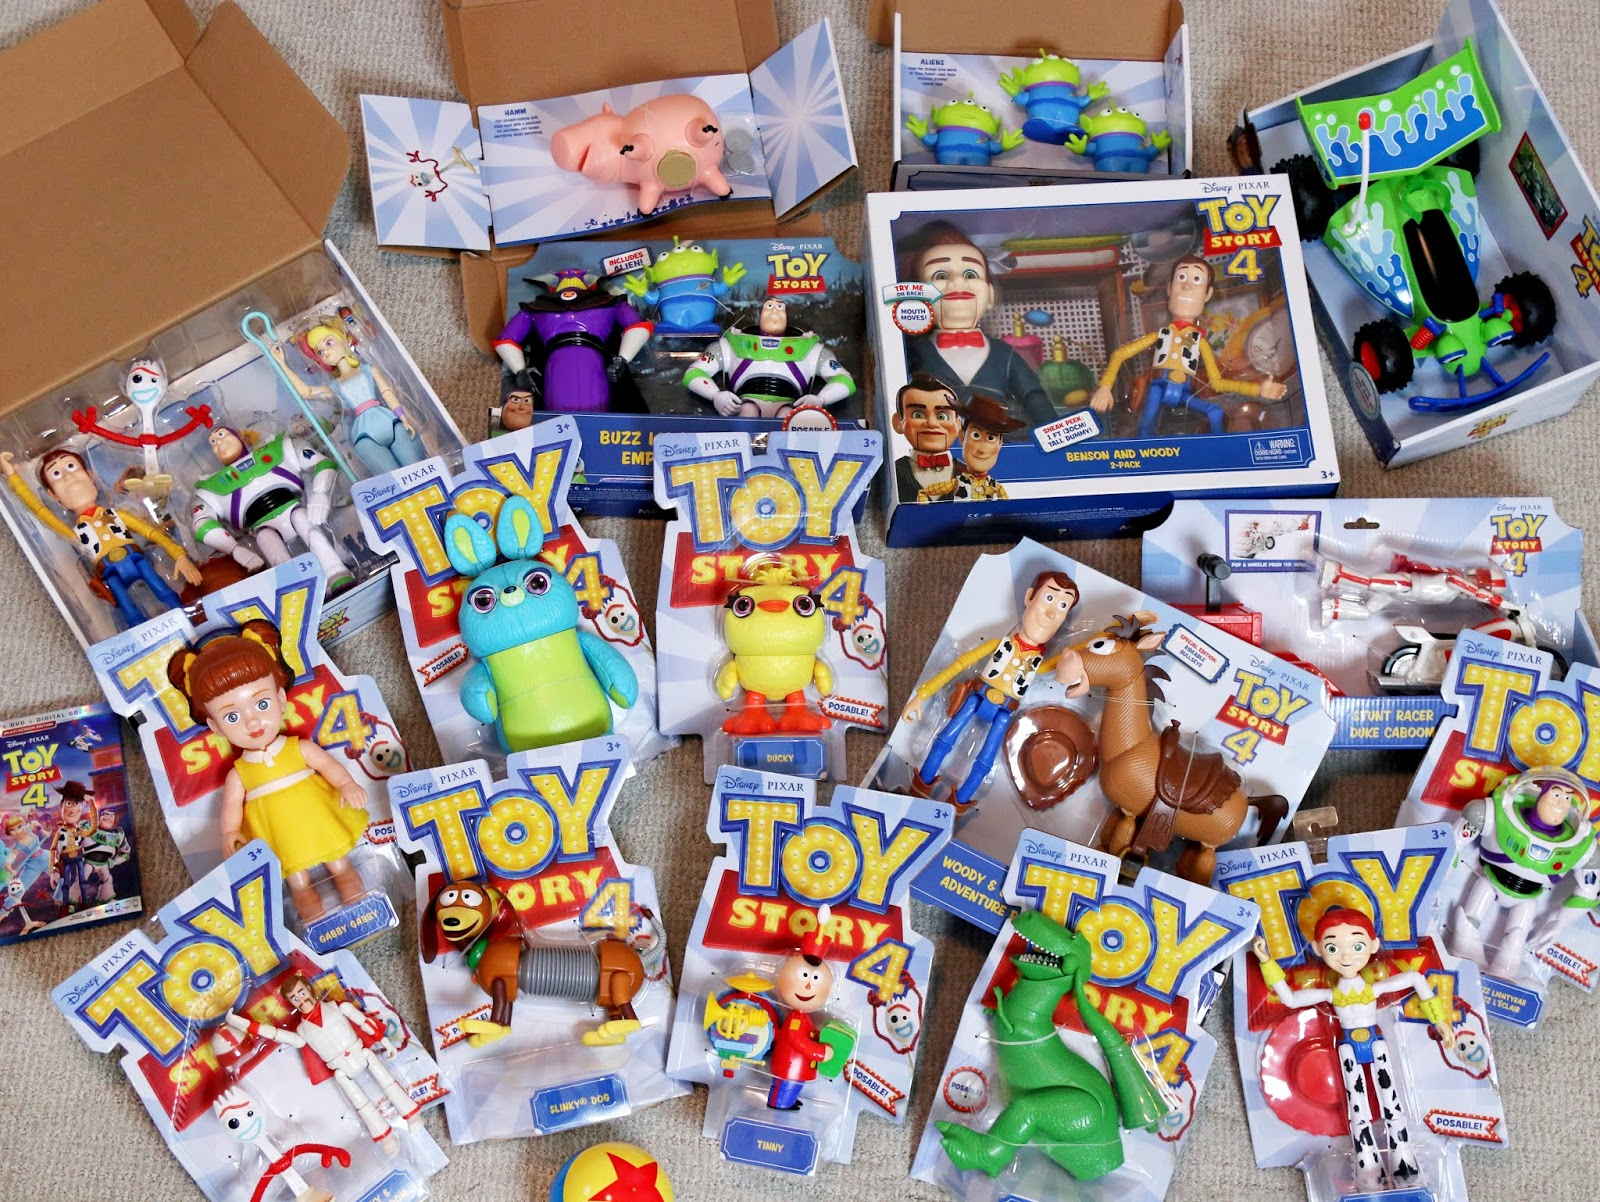 toy story 4 mattel action figure collection